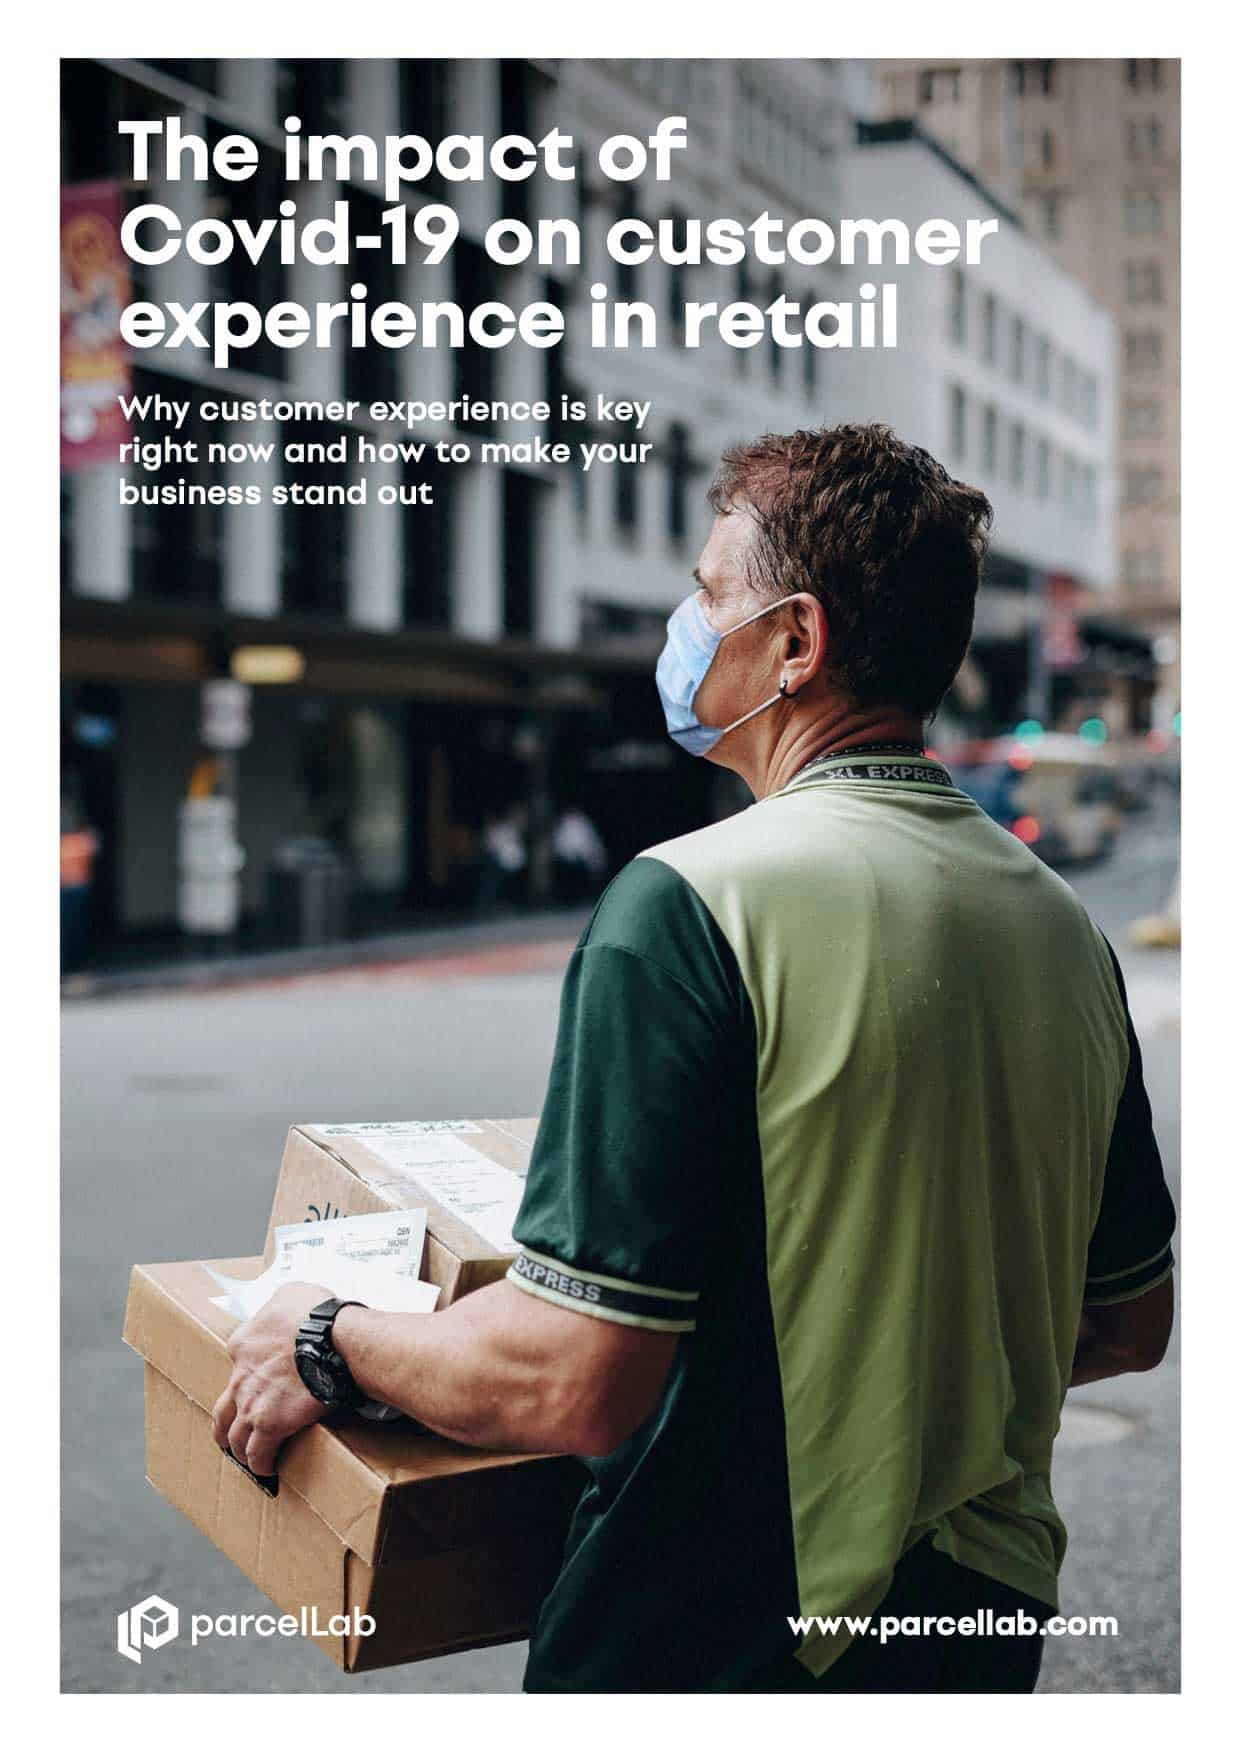 parcellab impact of covid-19 on customer experience thumbnail of man with mask delivering packages